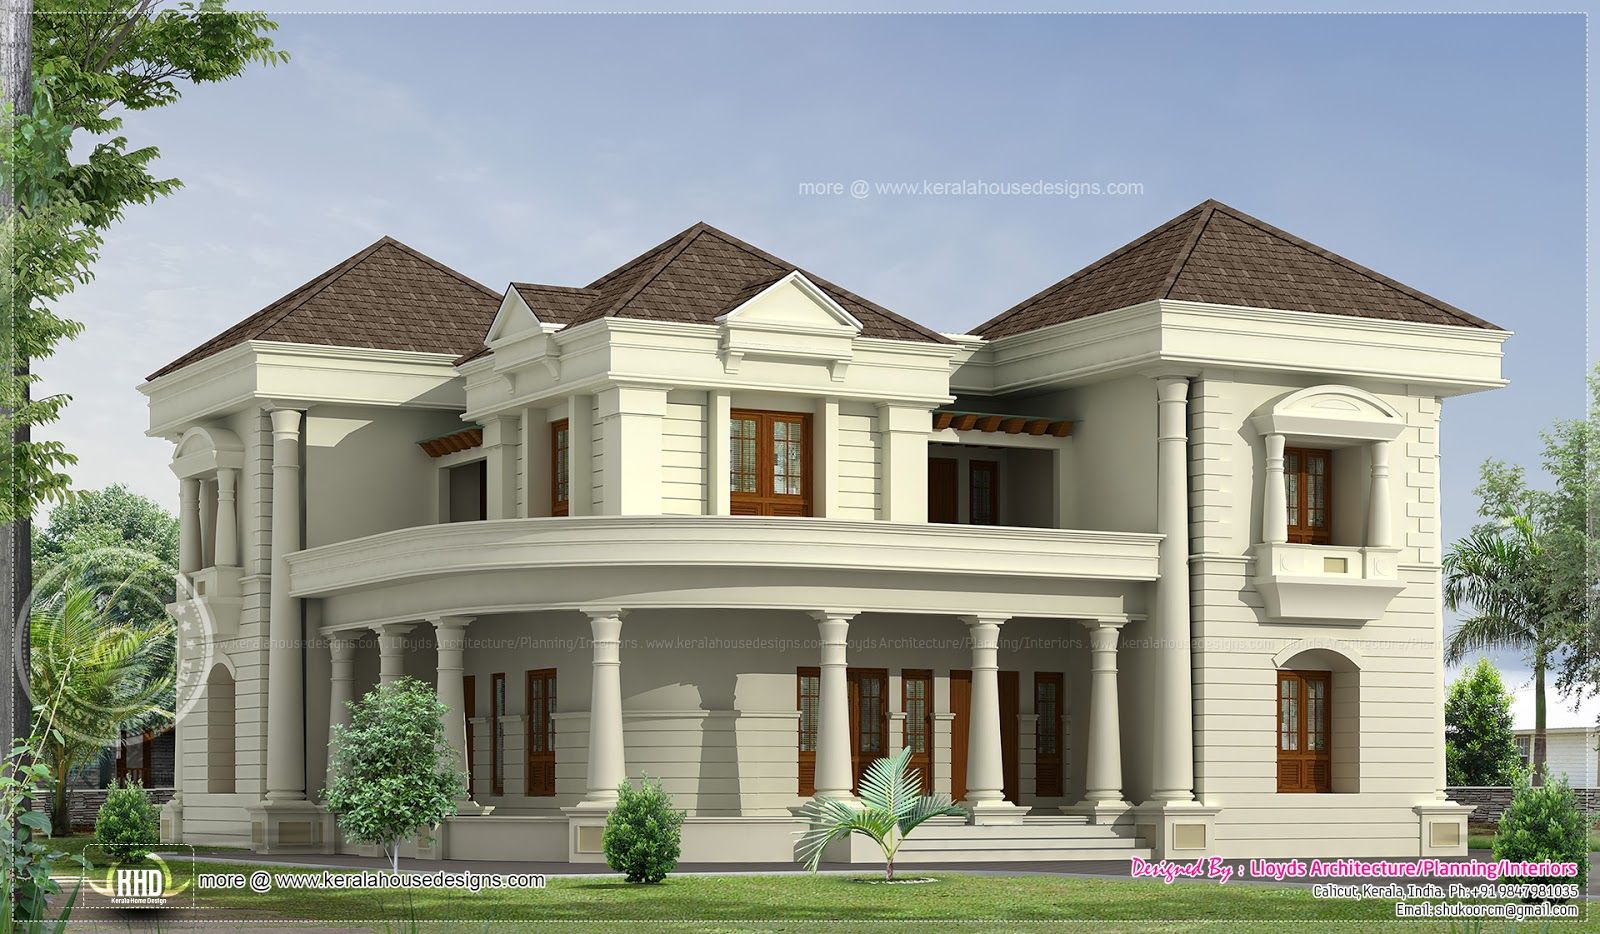 Modern bungalows bedroom luxurious bungalow floor plan for Bungalow building plans